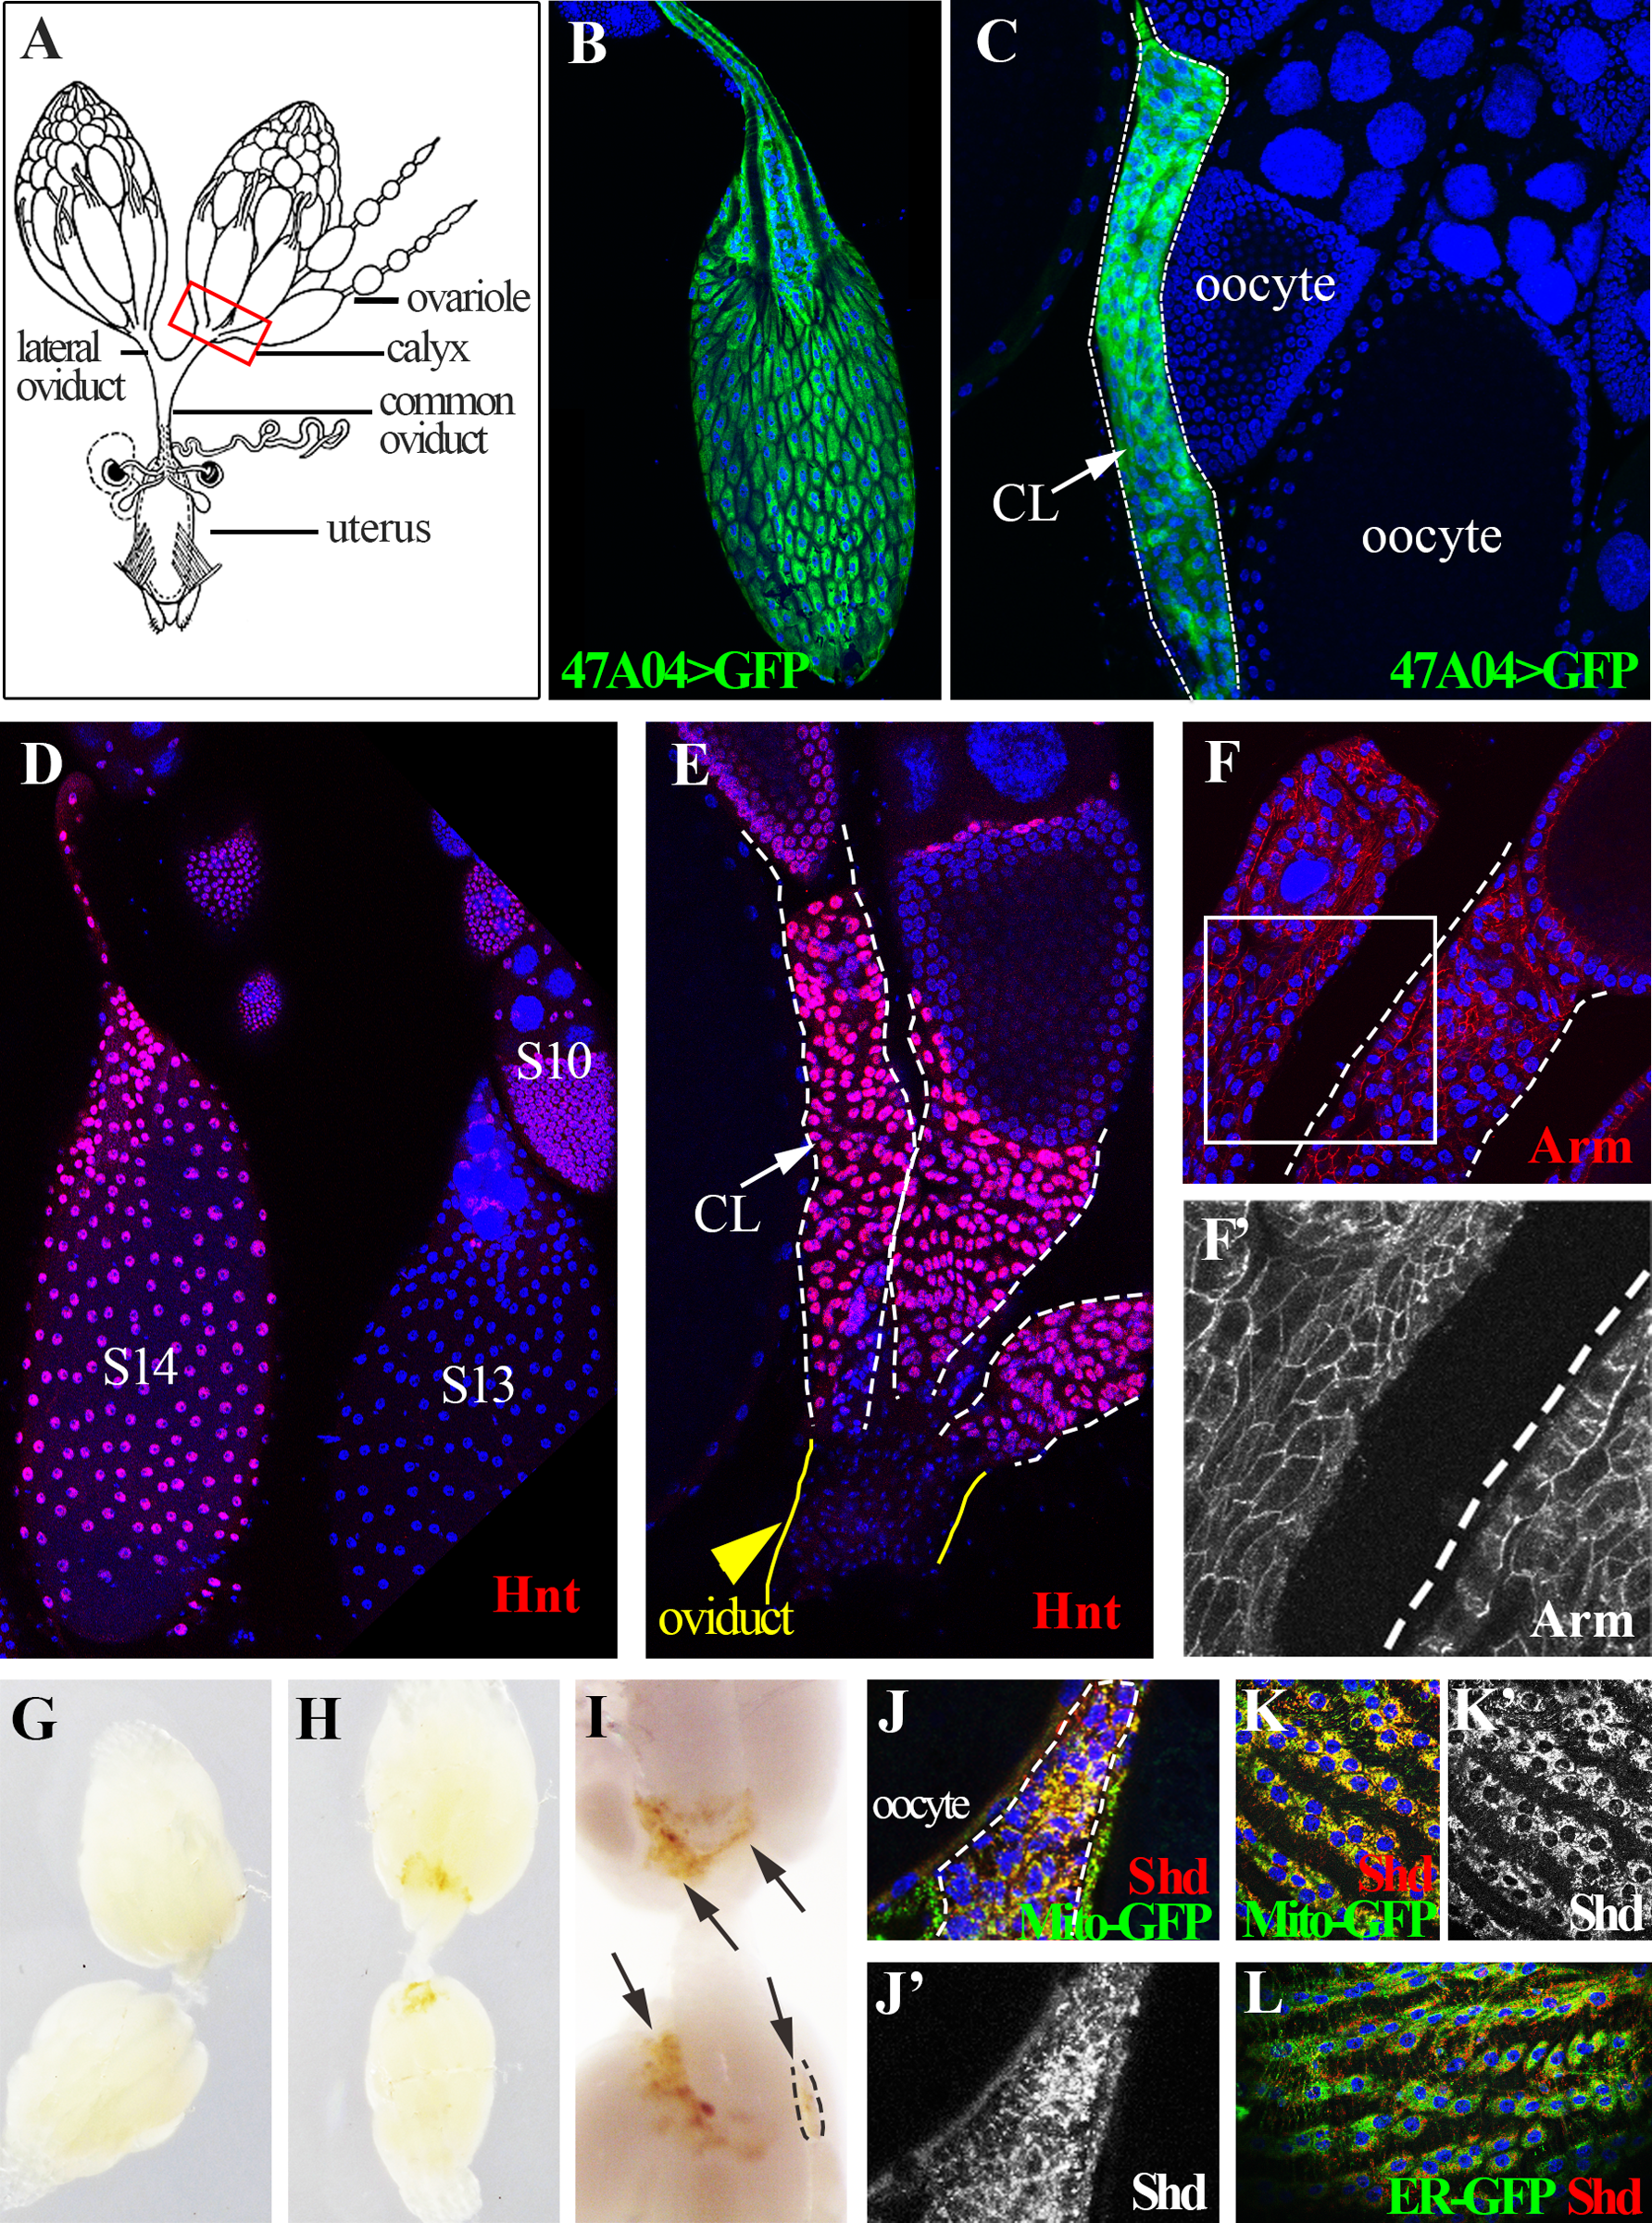 <i>Drosophila</i> follicle cells remain in the ovary following ovulation and form a corpus luteum.